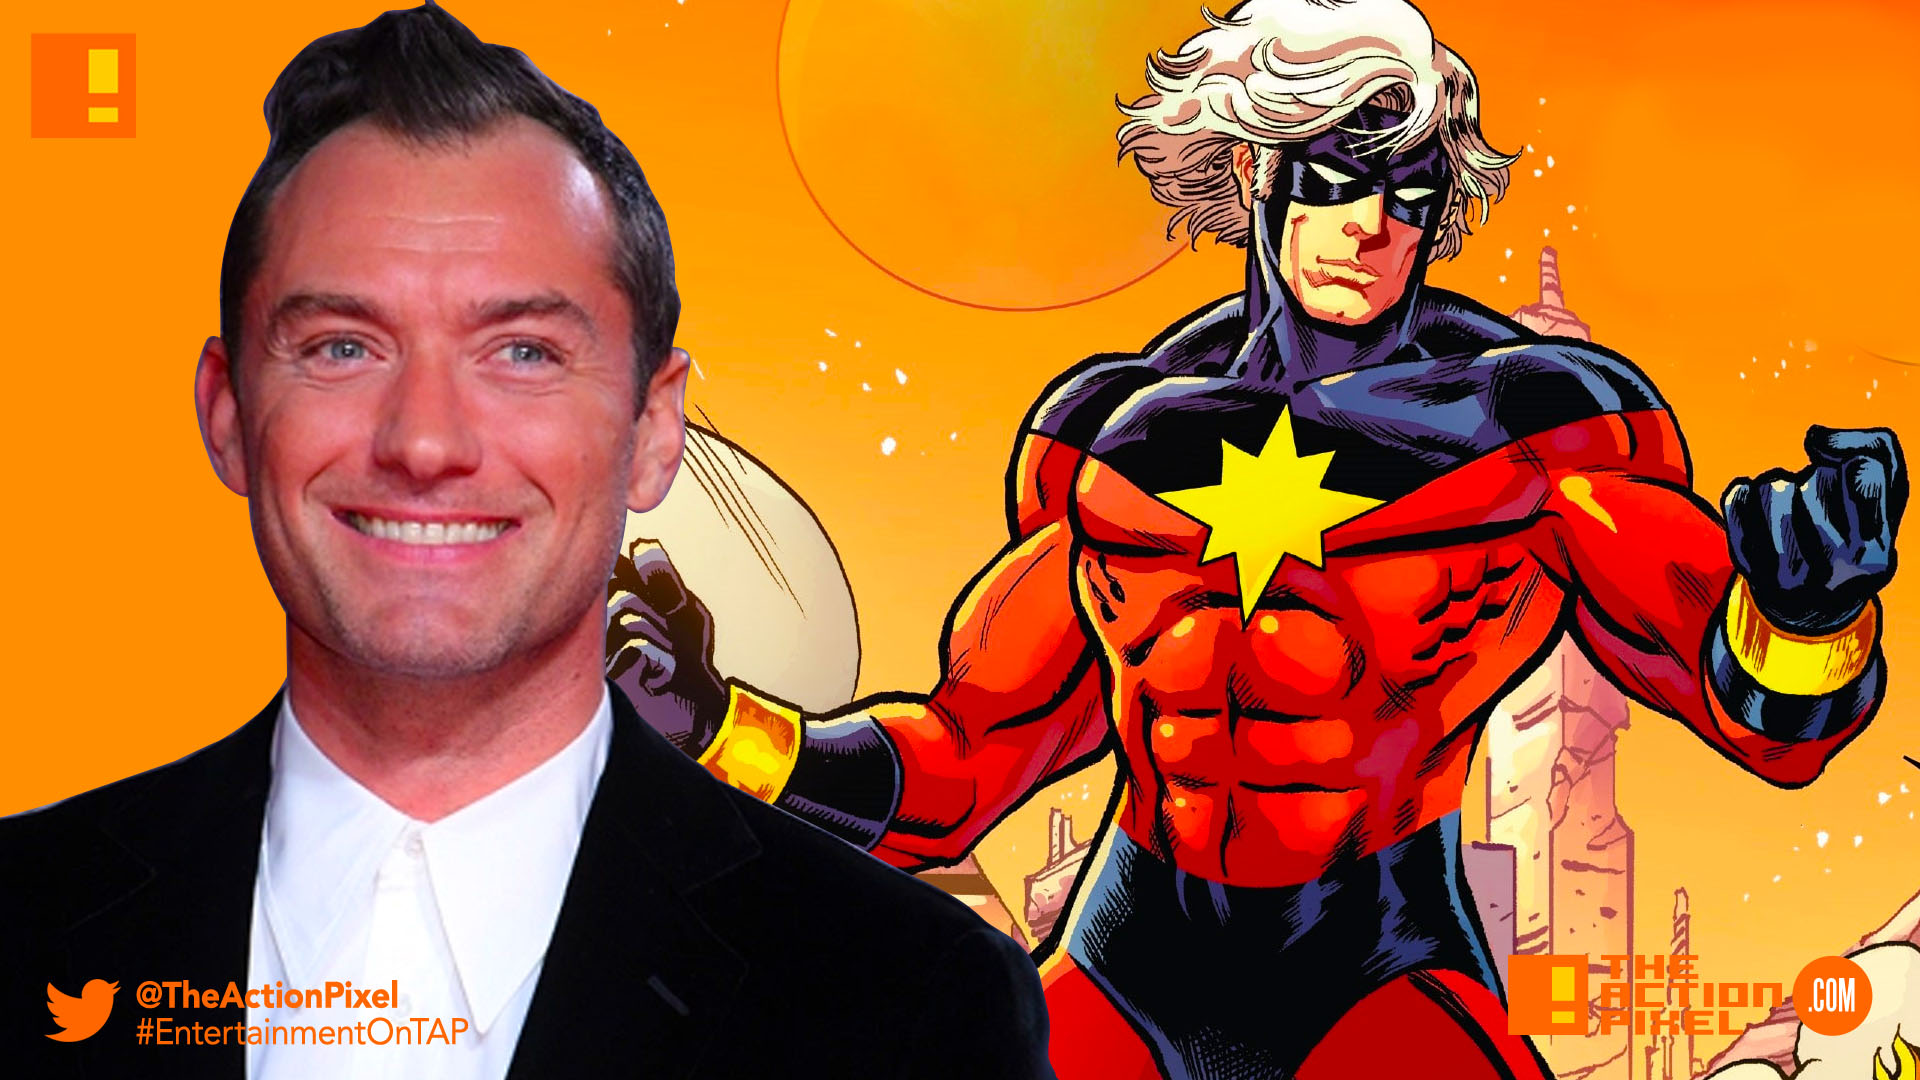 jude law, mar vell, captain marvel, brie larson, marvel,marvel comics,marvel entertainment, the action pixel,entertainment on tap,